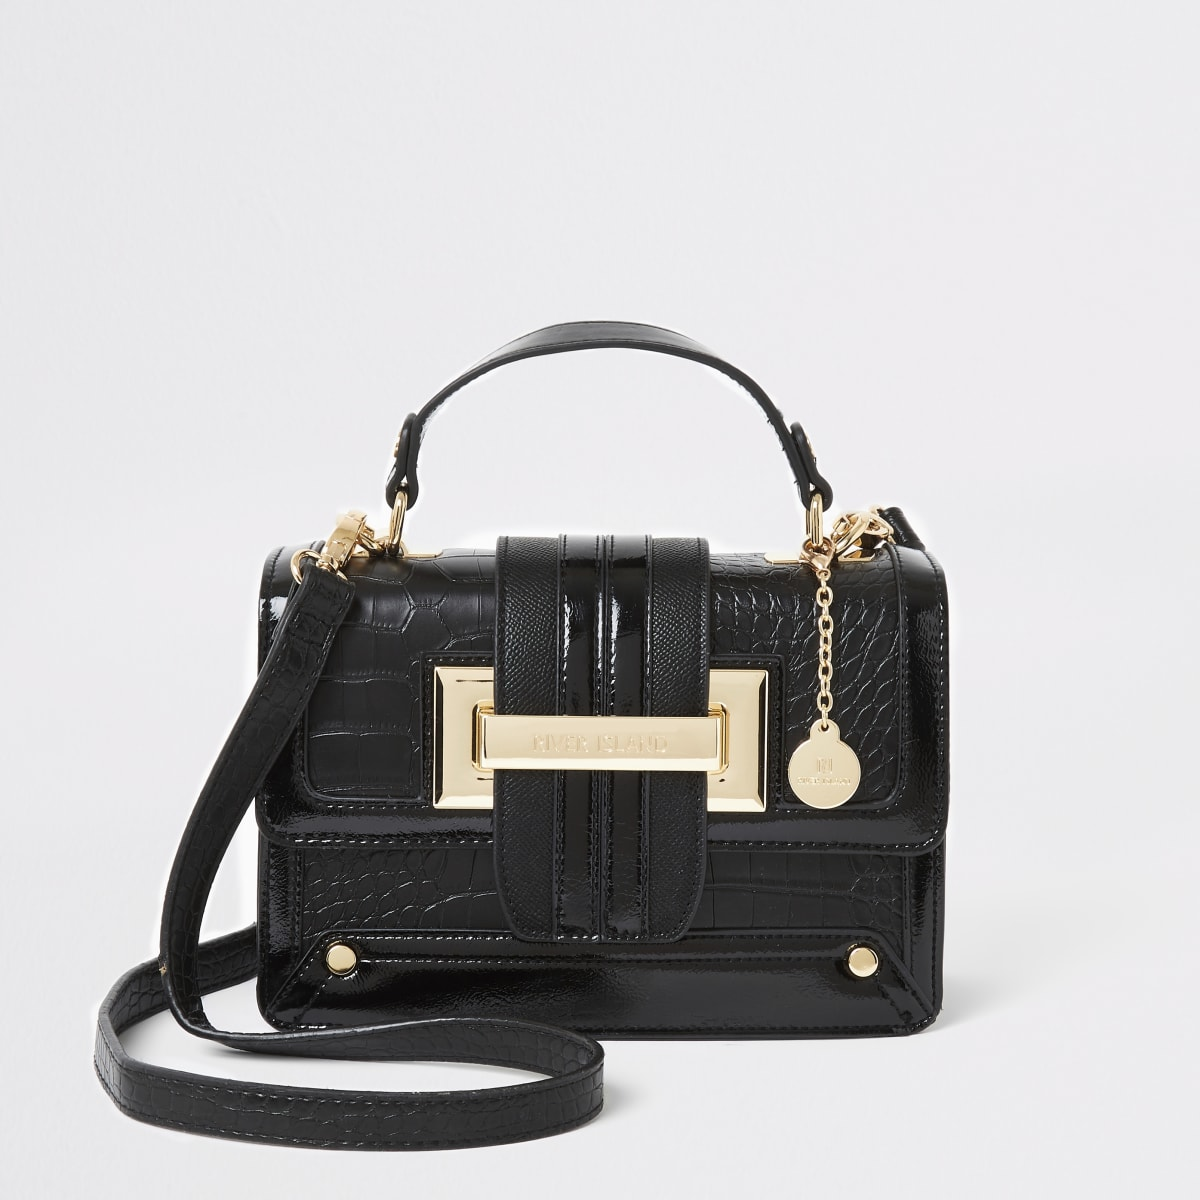 Black croc embossed satchel cross body bag